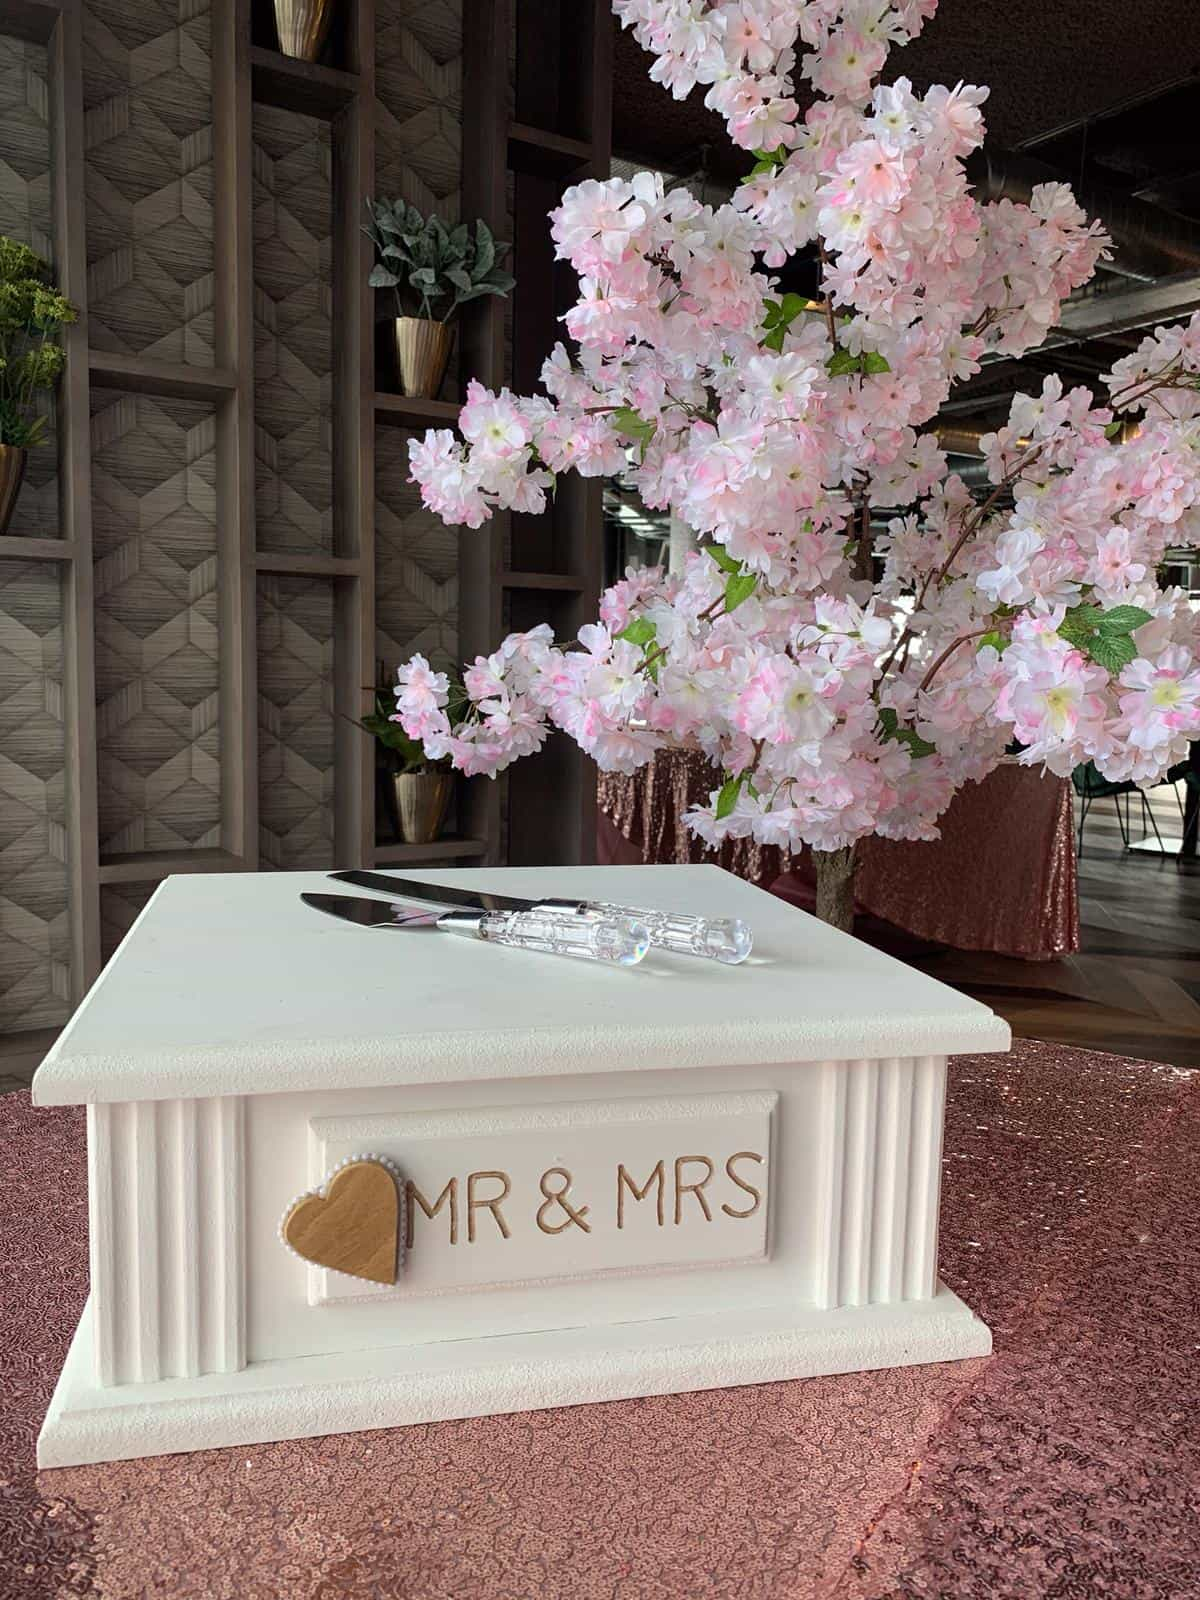 Wedding cakestand with pink rose blossom tree in background